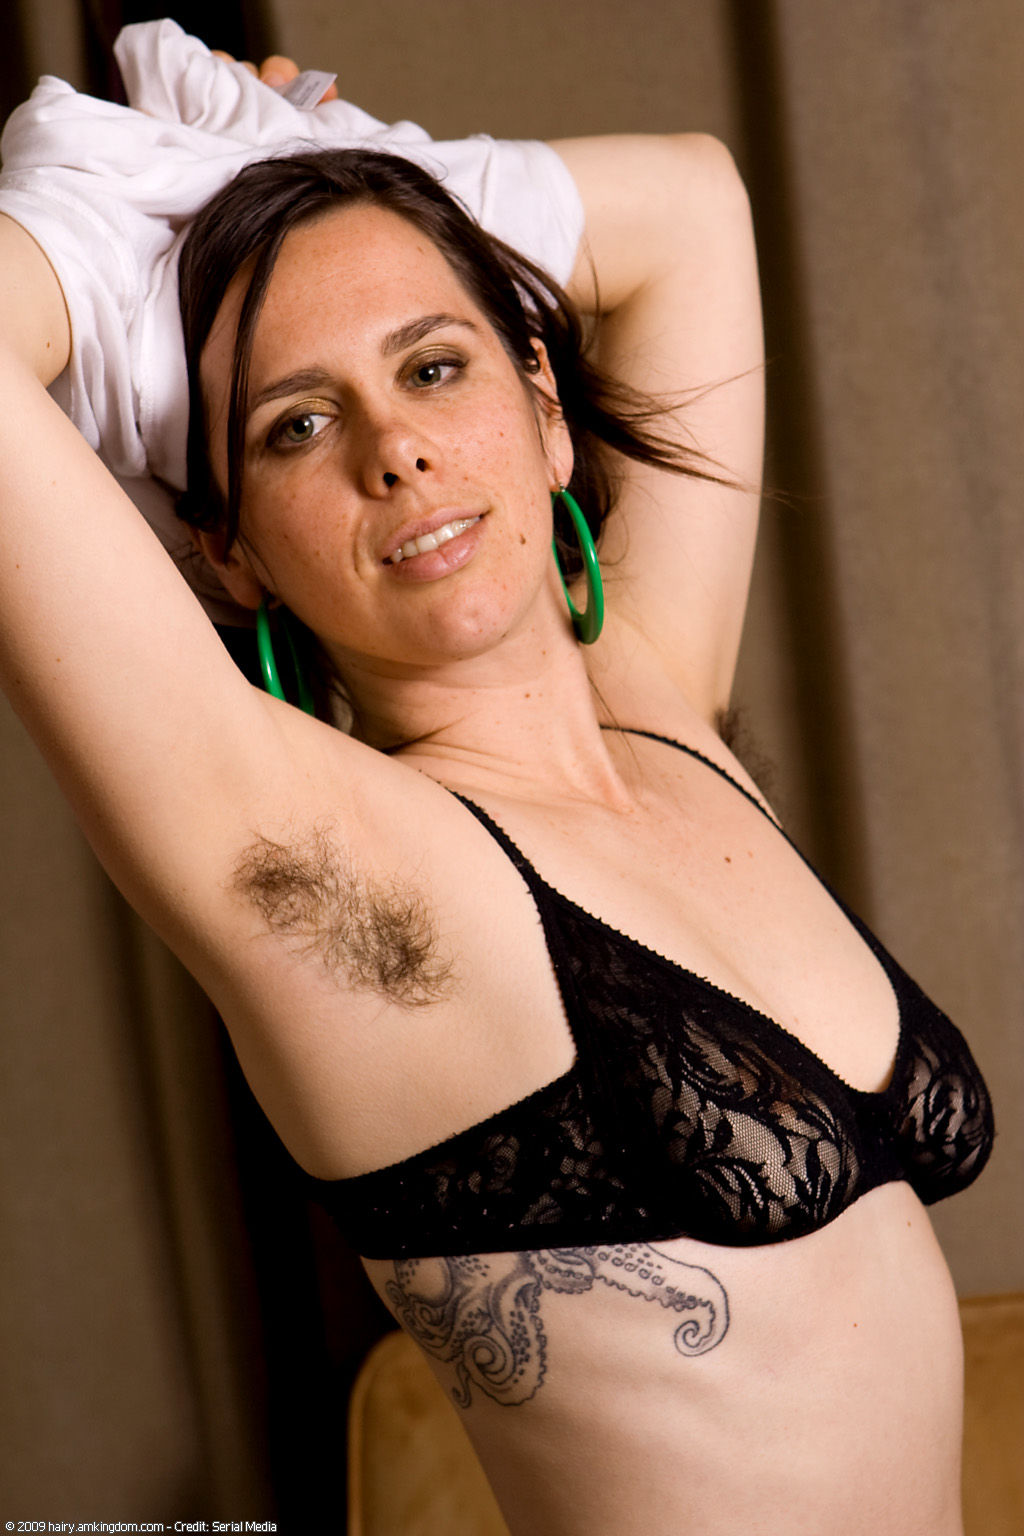 Theme, will Suicide girls hairy armpits